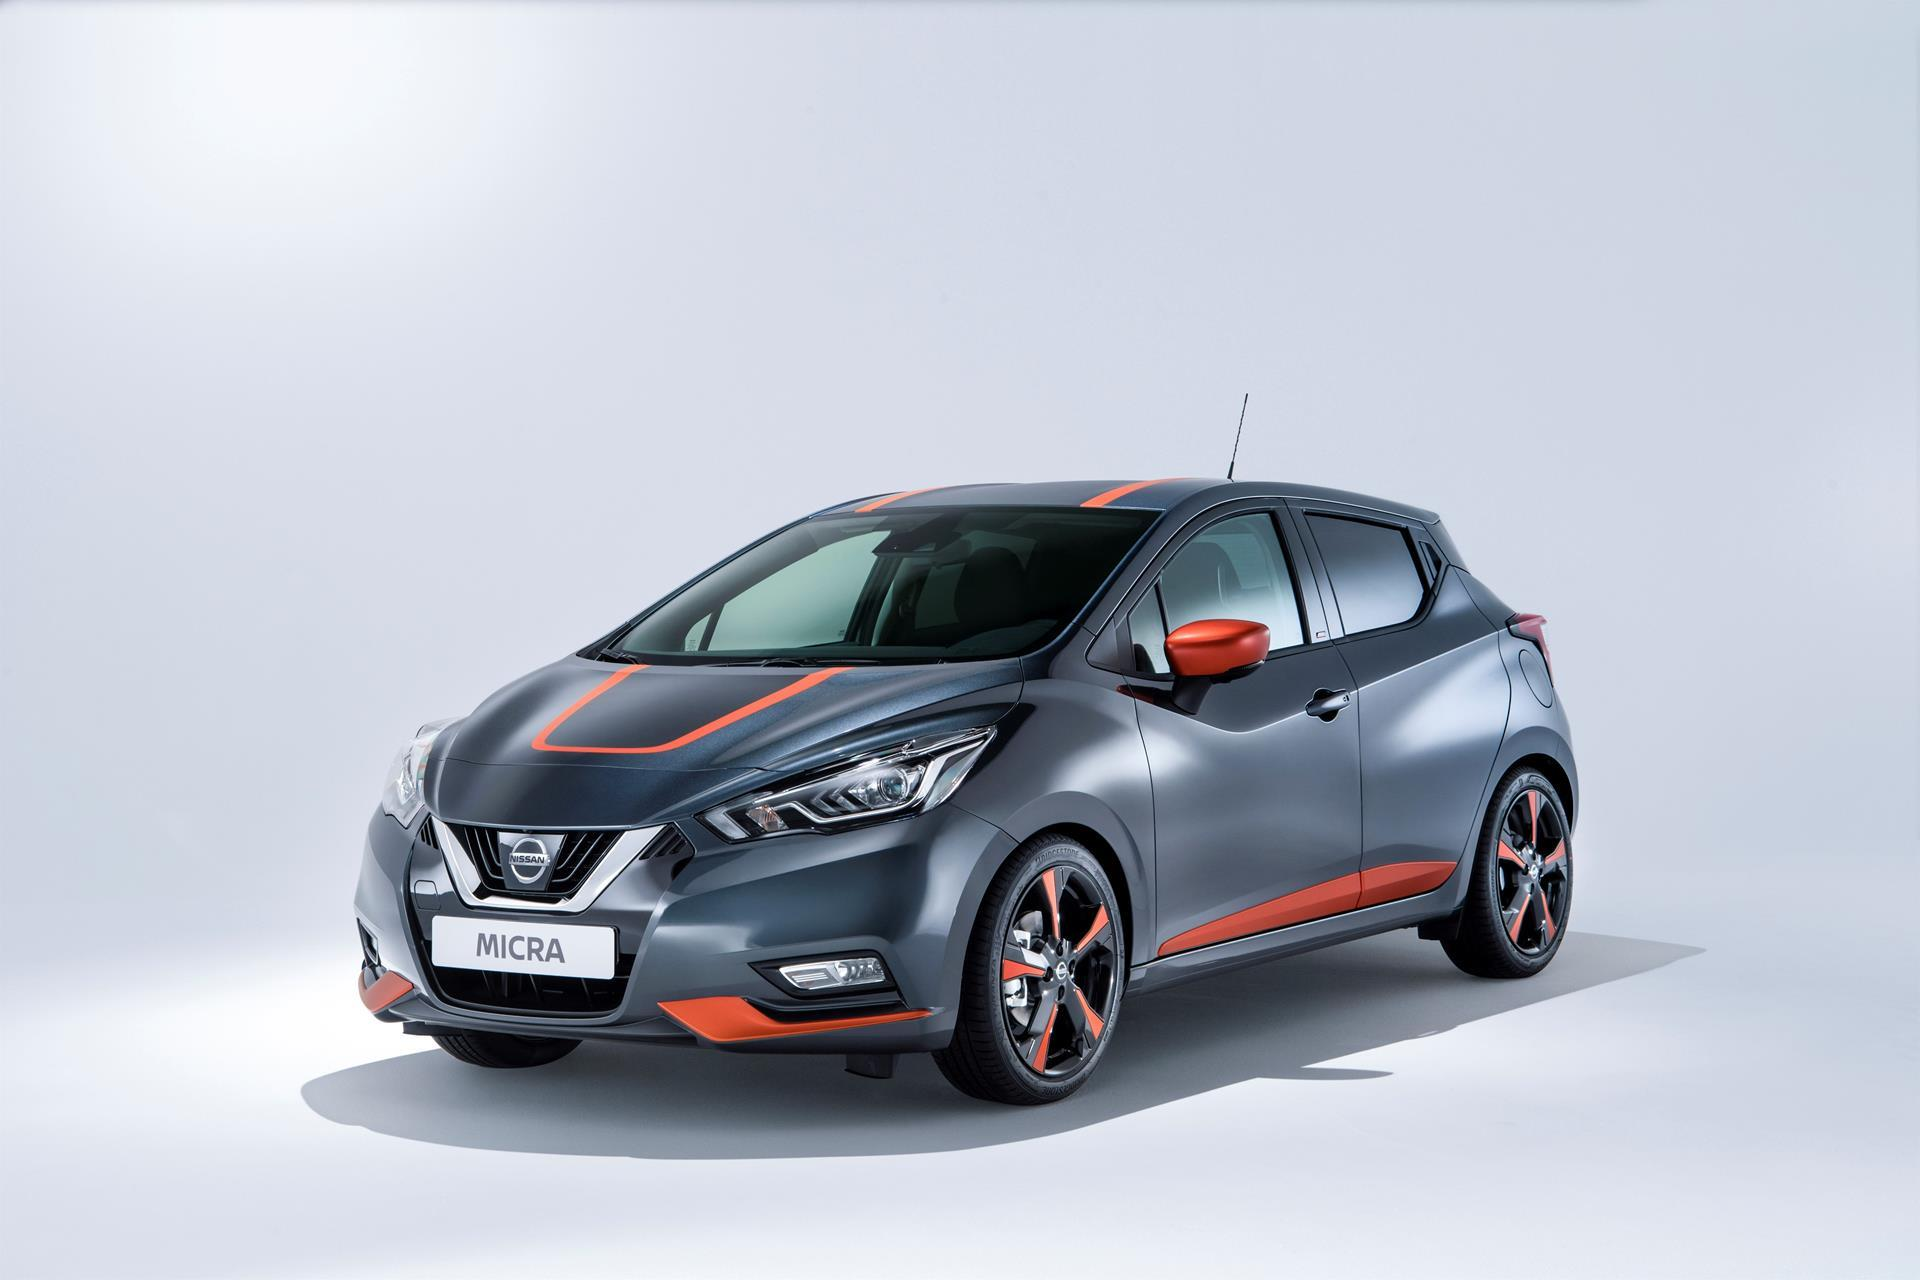 2017 Nissan Micra Bose Personal Edition News And Information